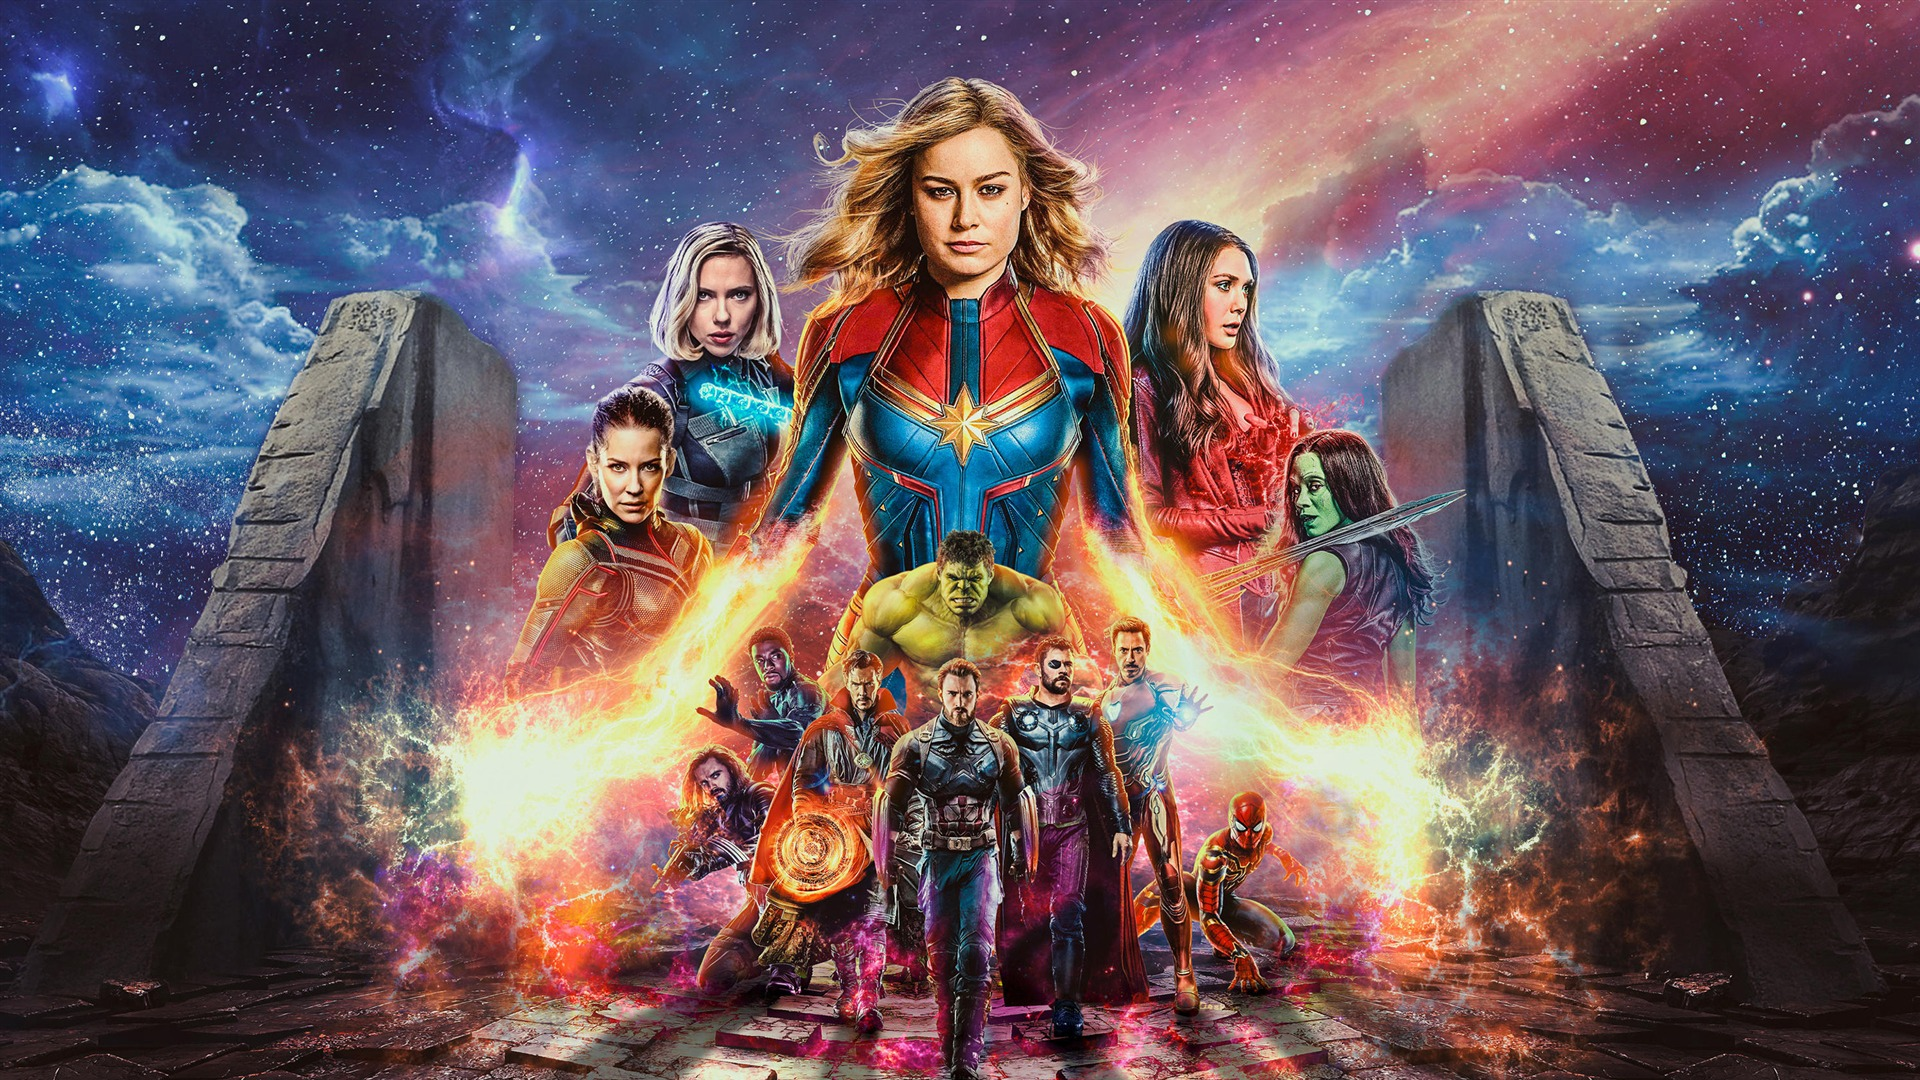 Captain Marvel Avengers Endgame Movie HD Wallpaper 1920x1080